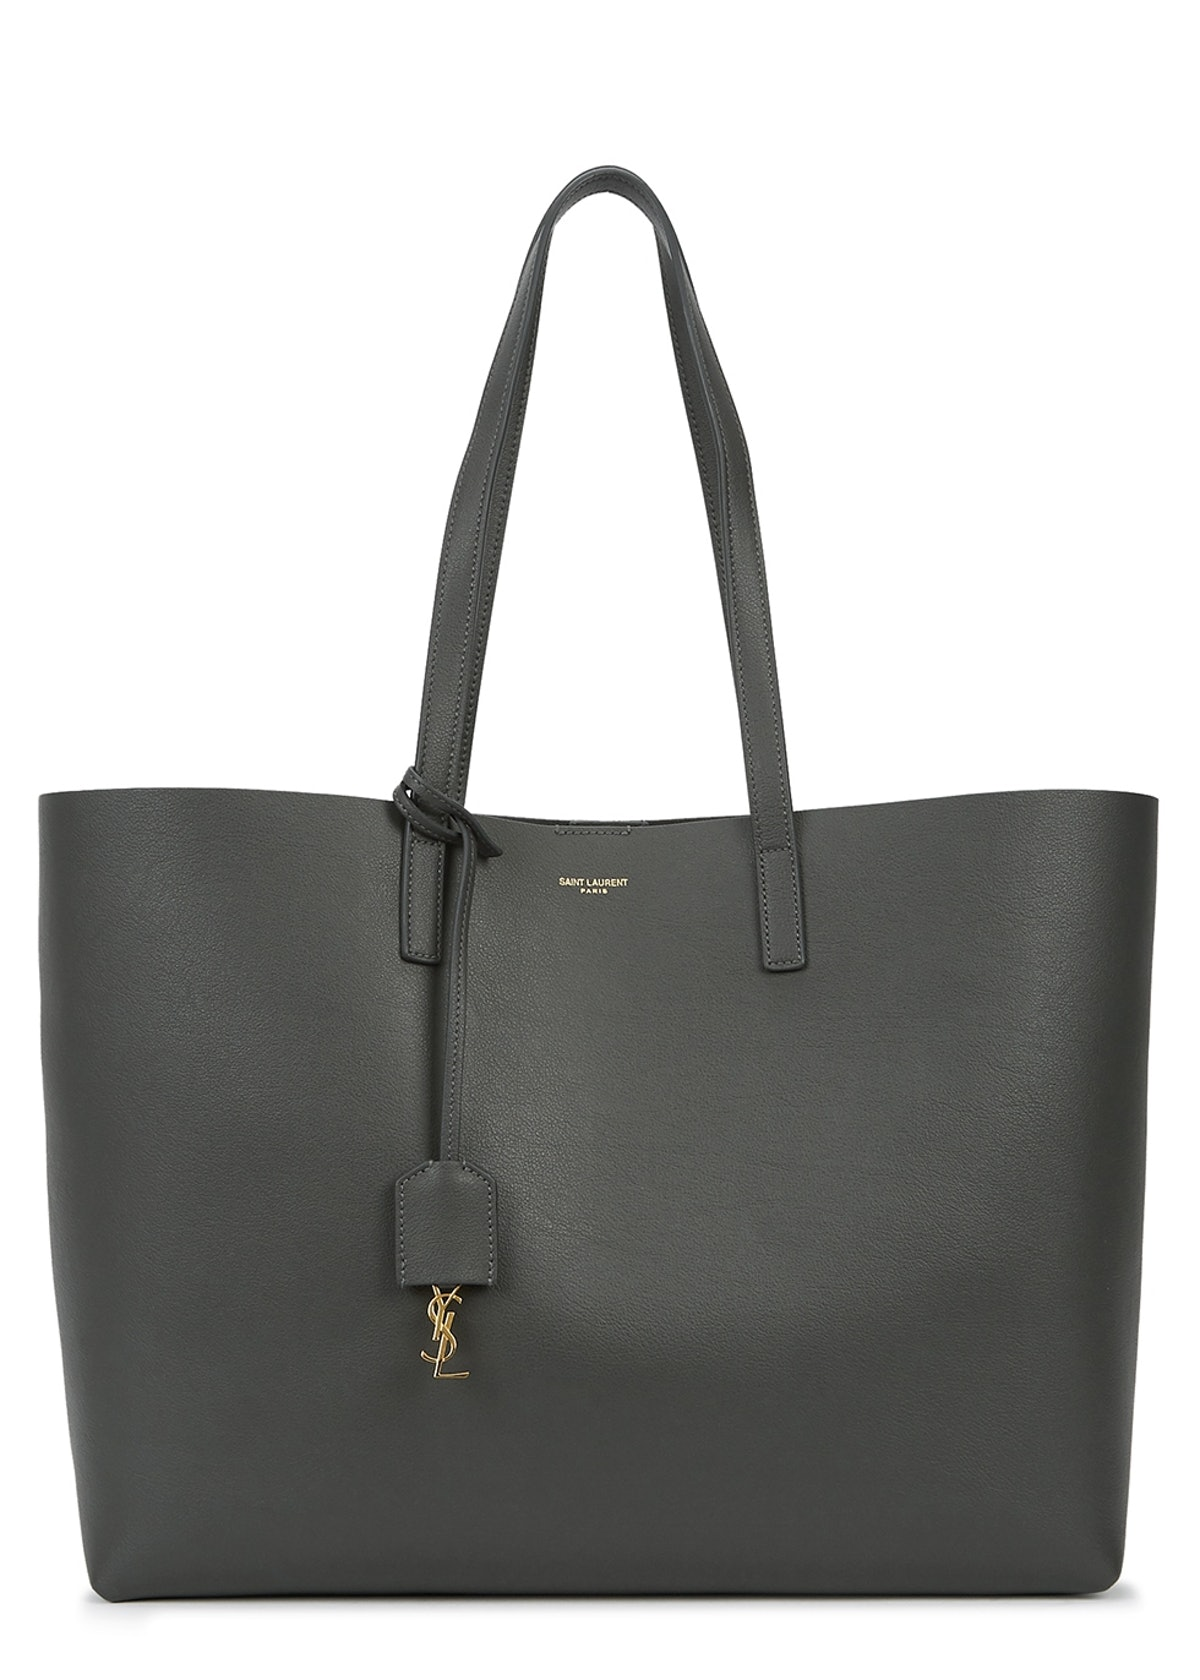 Charcoal grained leather tote: image 1